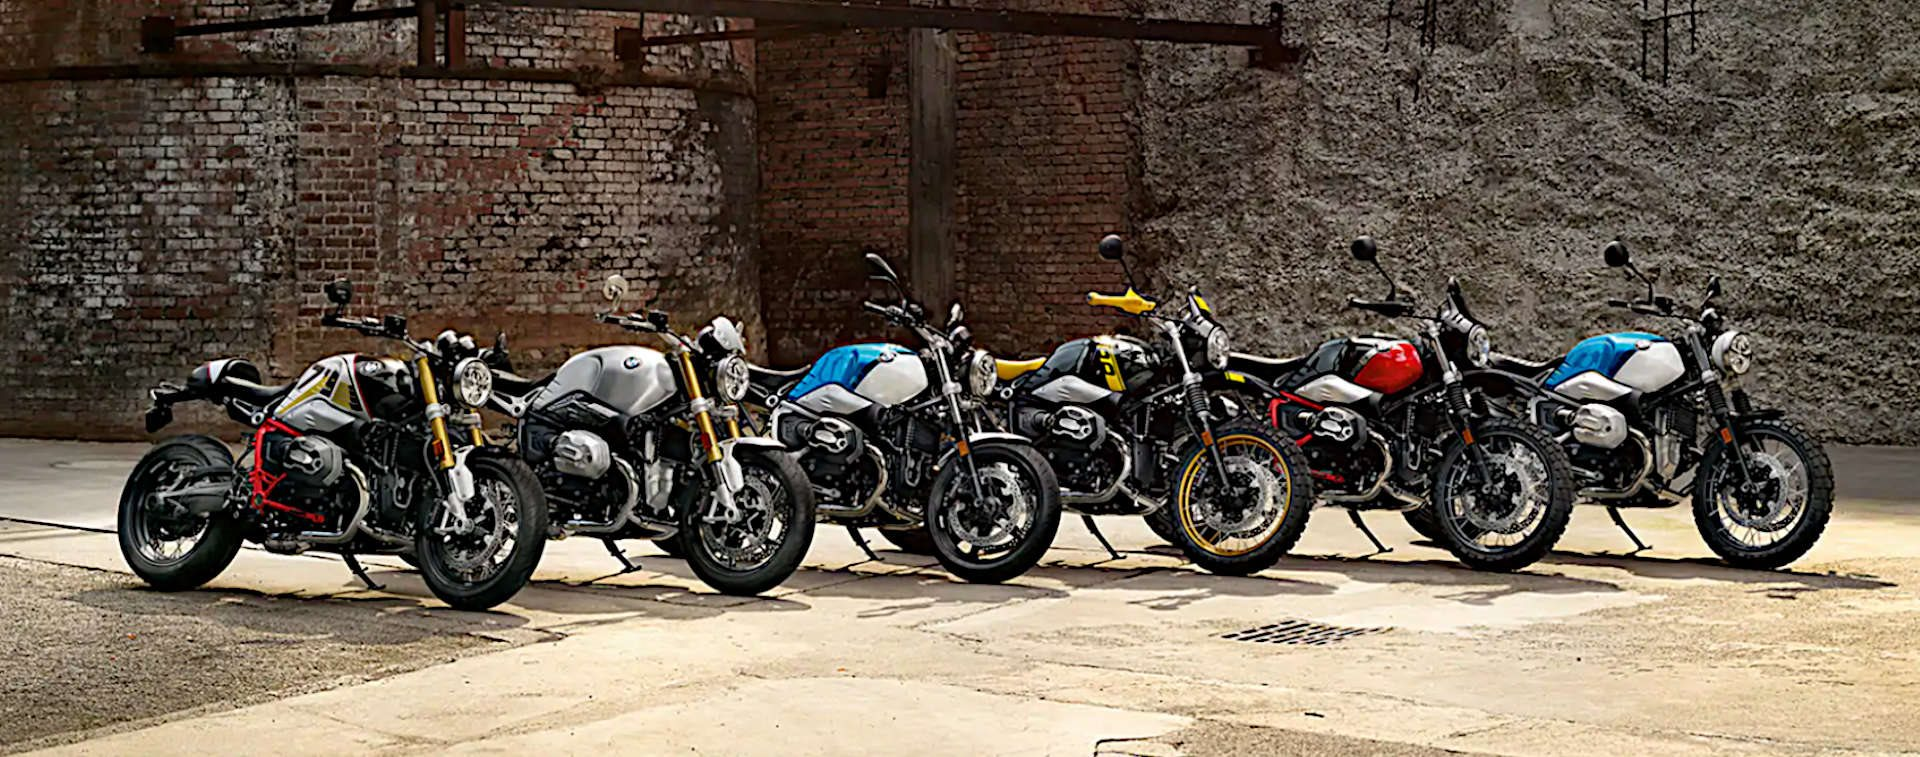 MOTORCYCLING HAS NEVER LOOKED SO GOOD